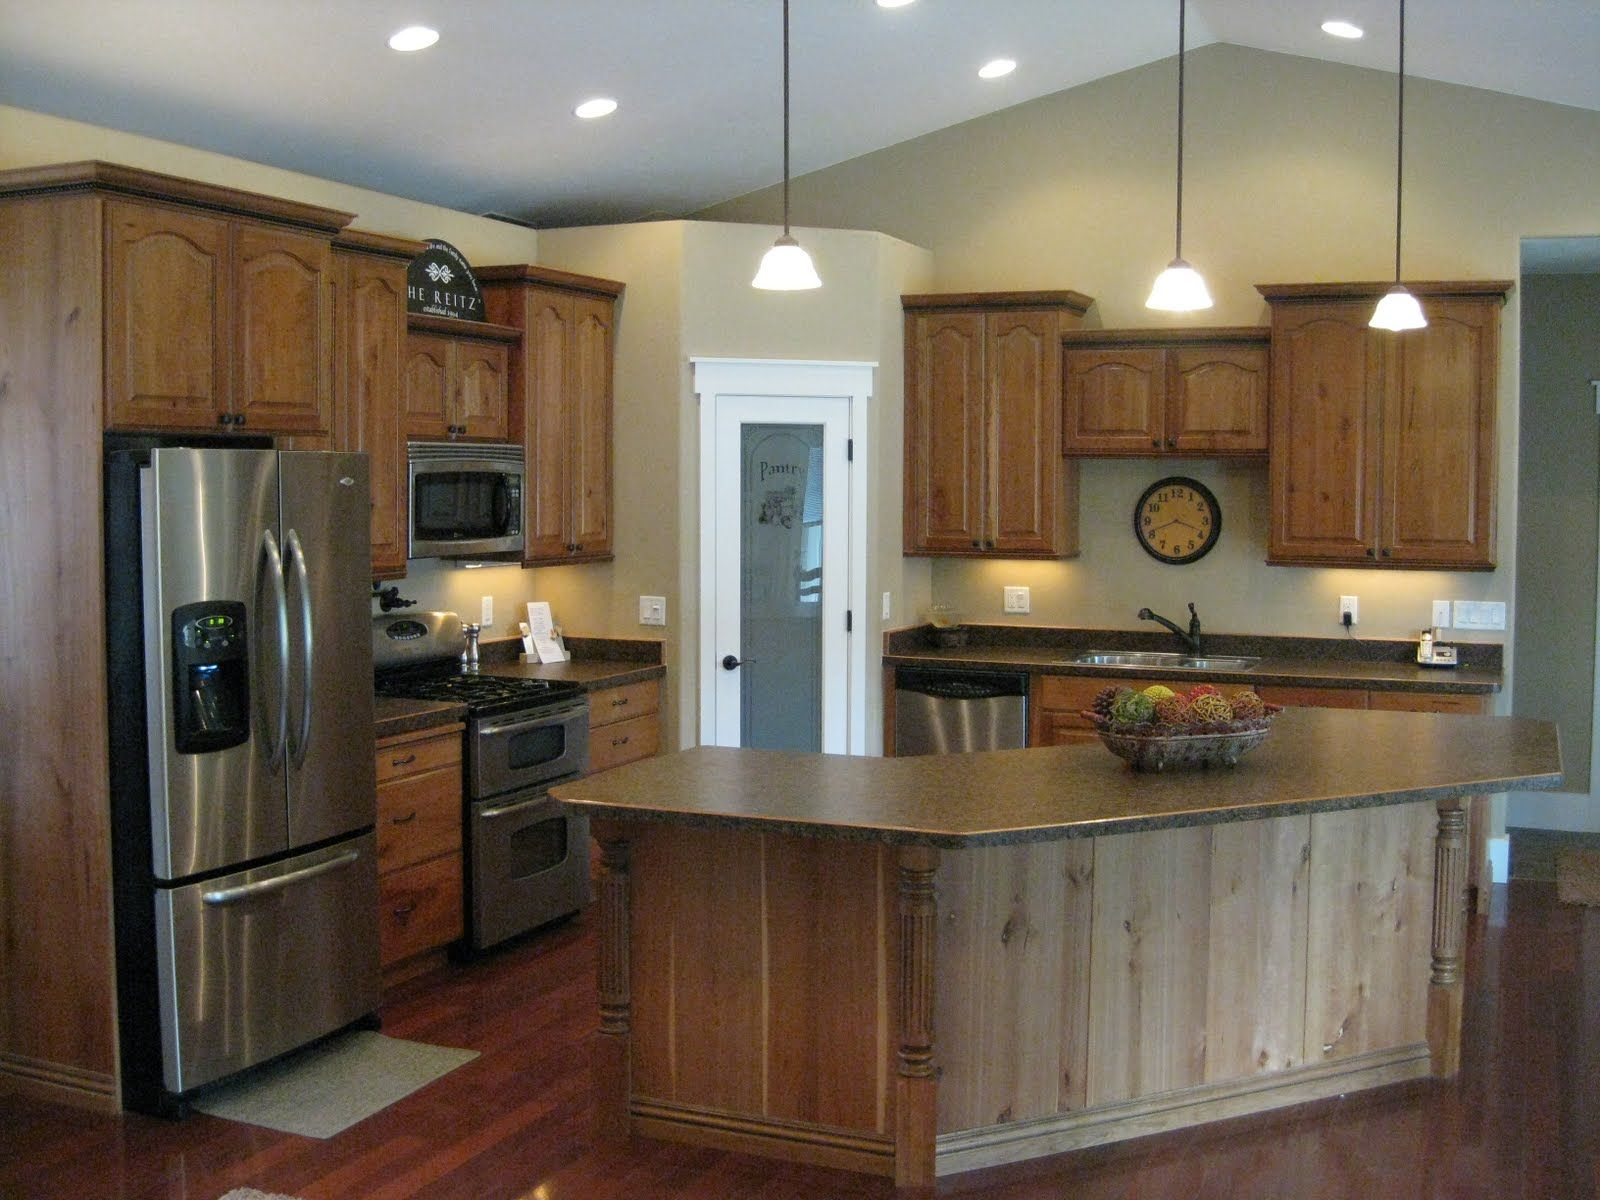 black moulding | Cherry cabinets with mocha glaze and ...